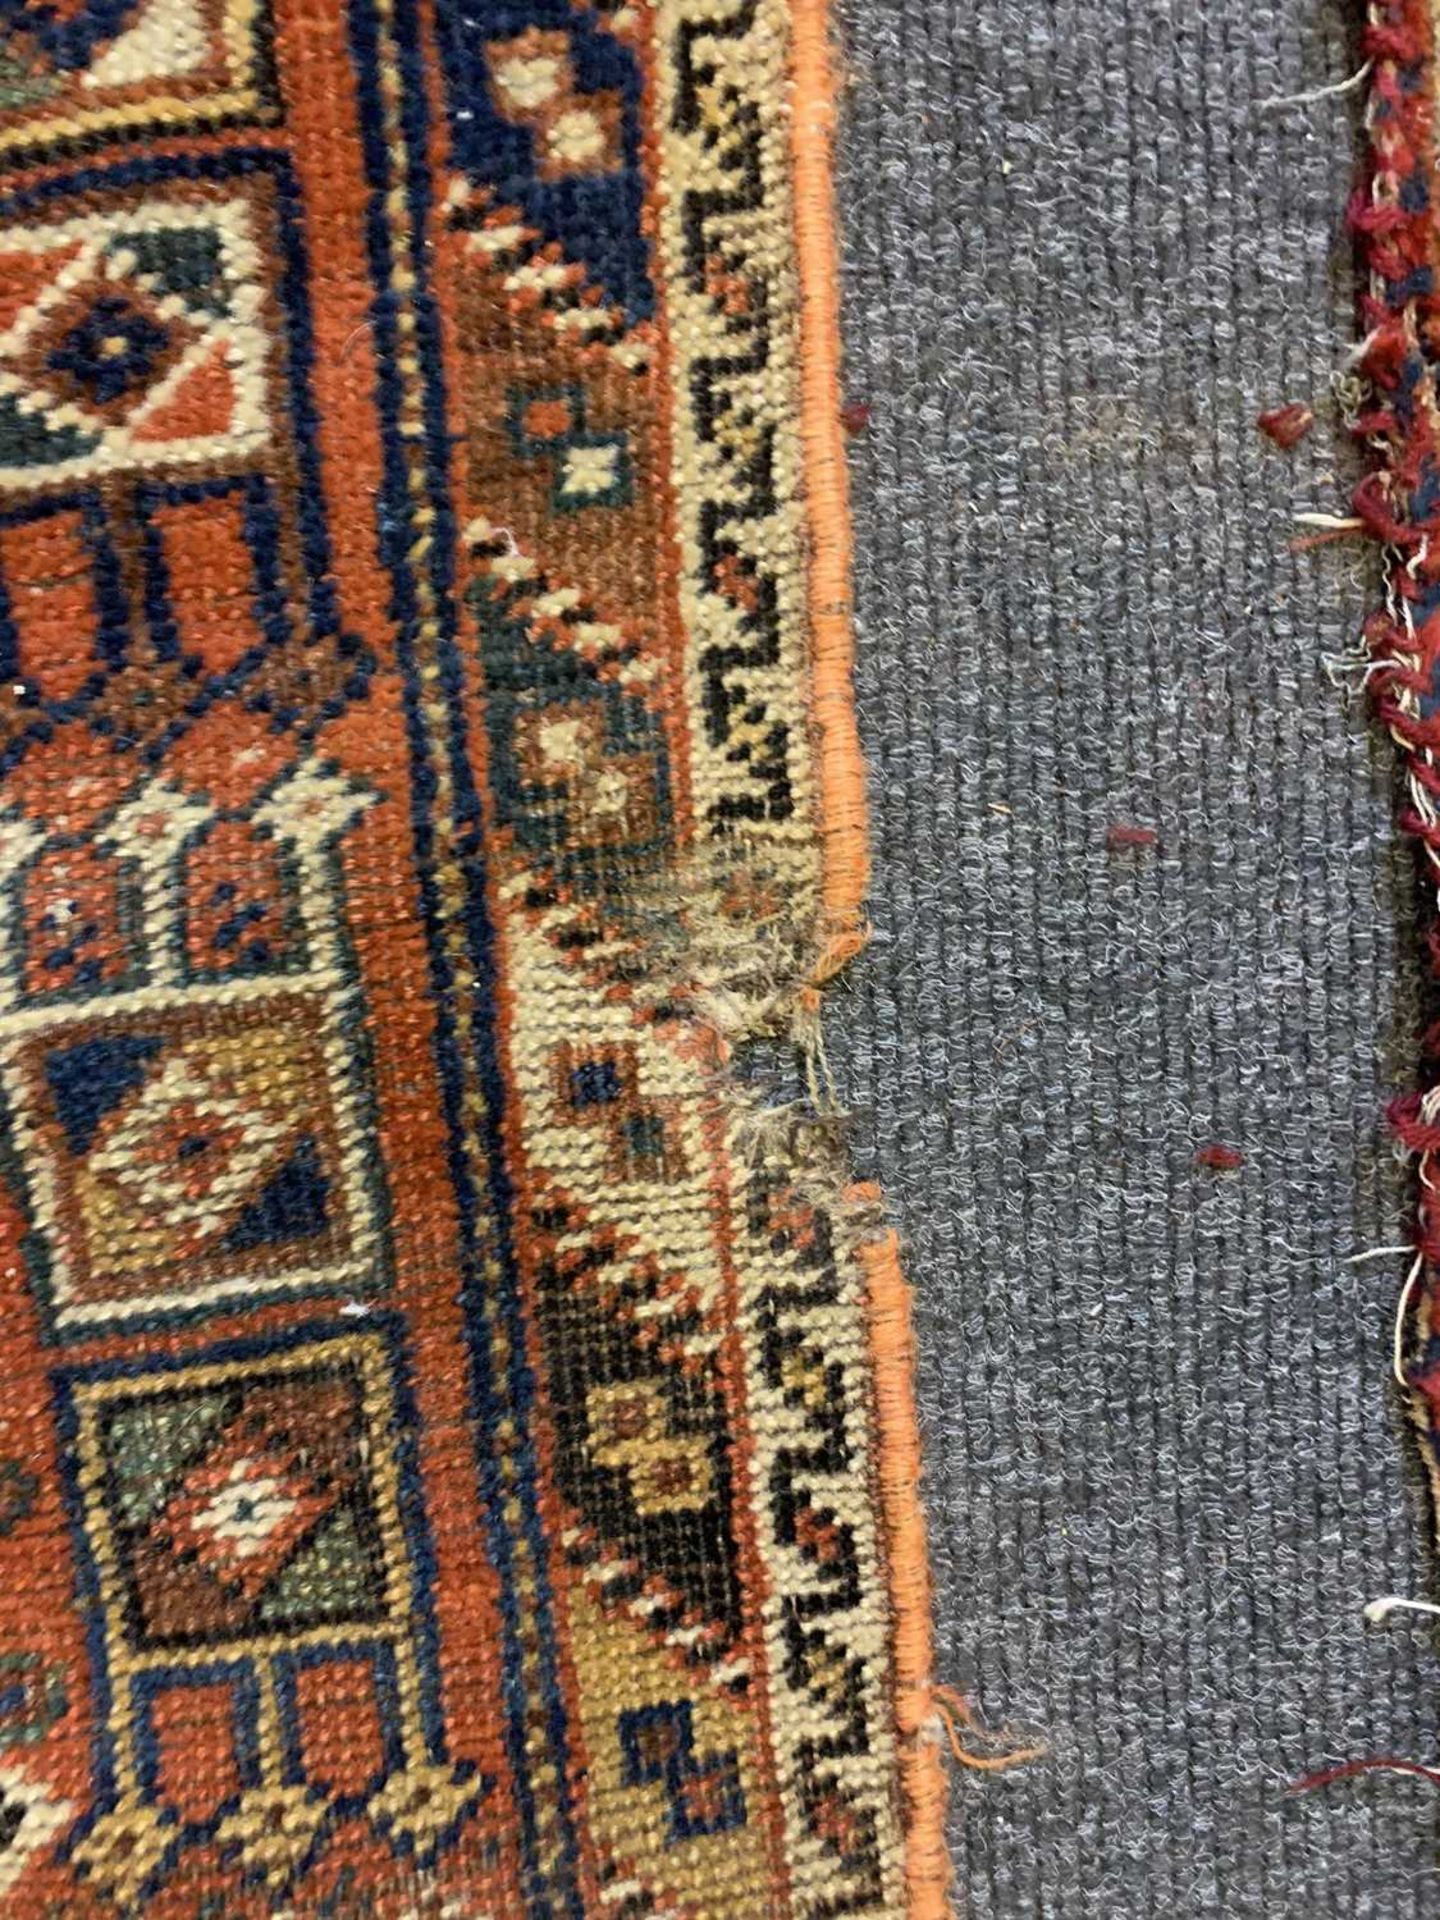 A Persian carpet, - Image 5 of 14